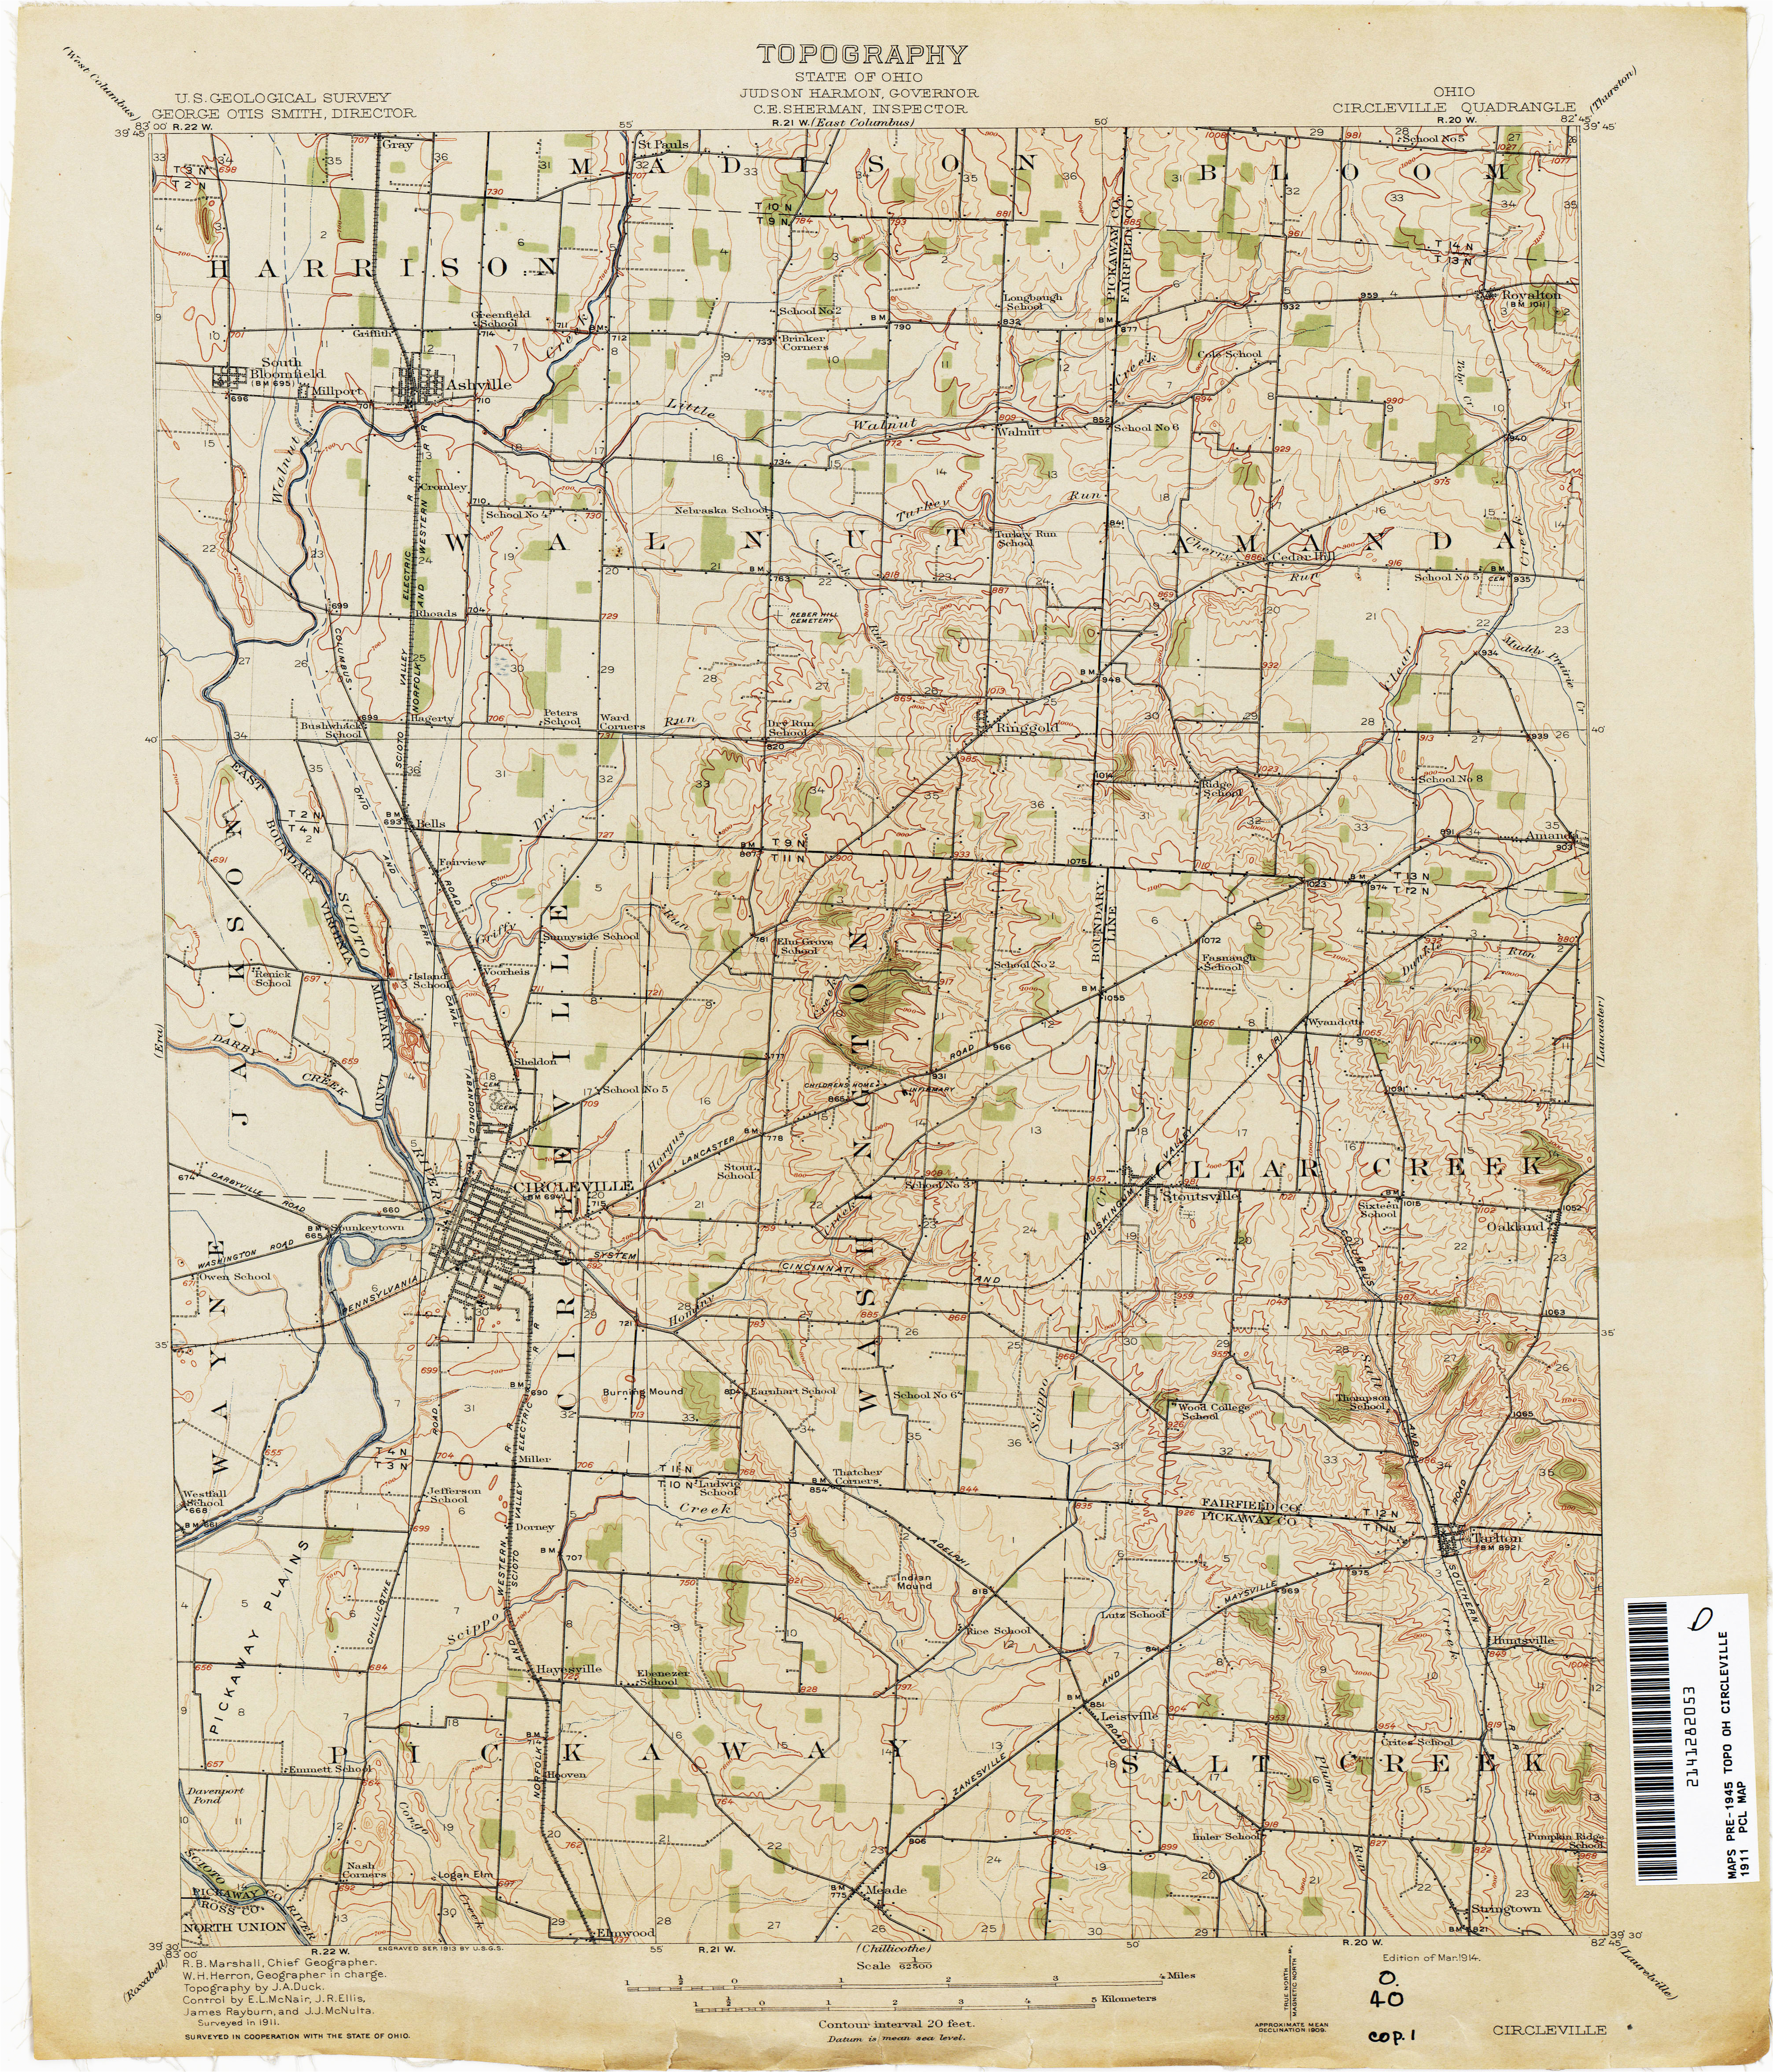 Map Of Han County Ohio Ohio Historical topographic Maps ... Map Of Longwood Ohio on map of comsewogue, map of columbia point, map of casselberry, map of locust point, map of university heights, map of lake panasoffkee, map of holly hill, map of oak hill, map of government center, map of gordonsville, map of kenansville, map of cassadaga, map of carrabelle, map of mead, map of pahokee, map of matlacha, map of seaport district, map of long key, map of southwest orlando, map of wimauma,